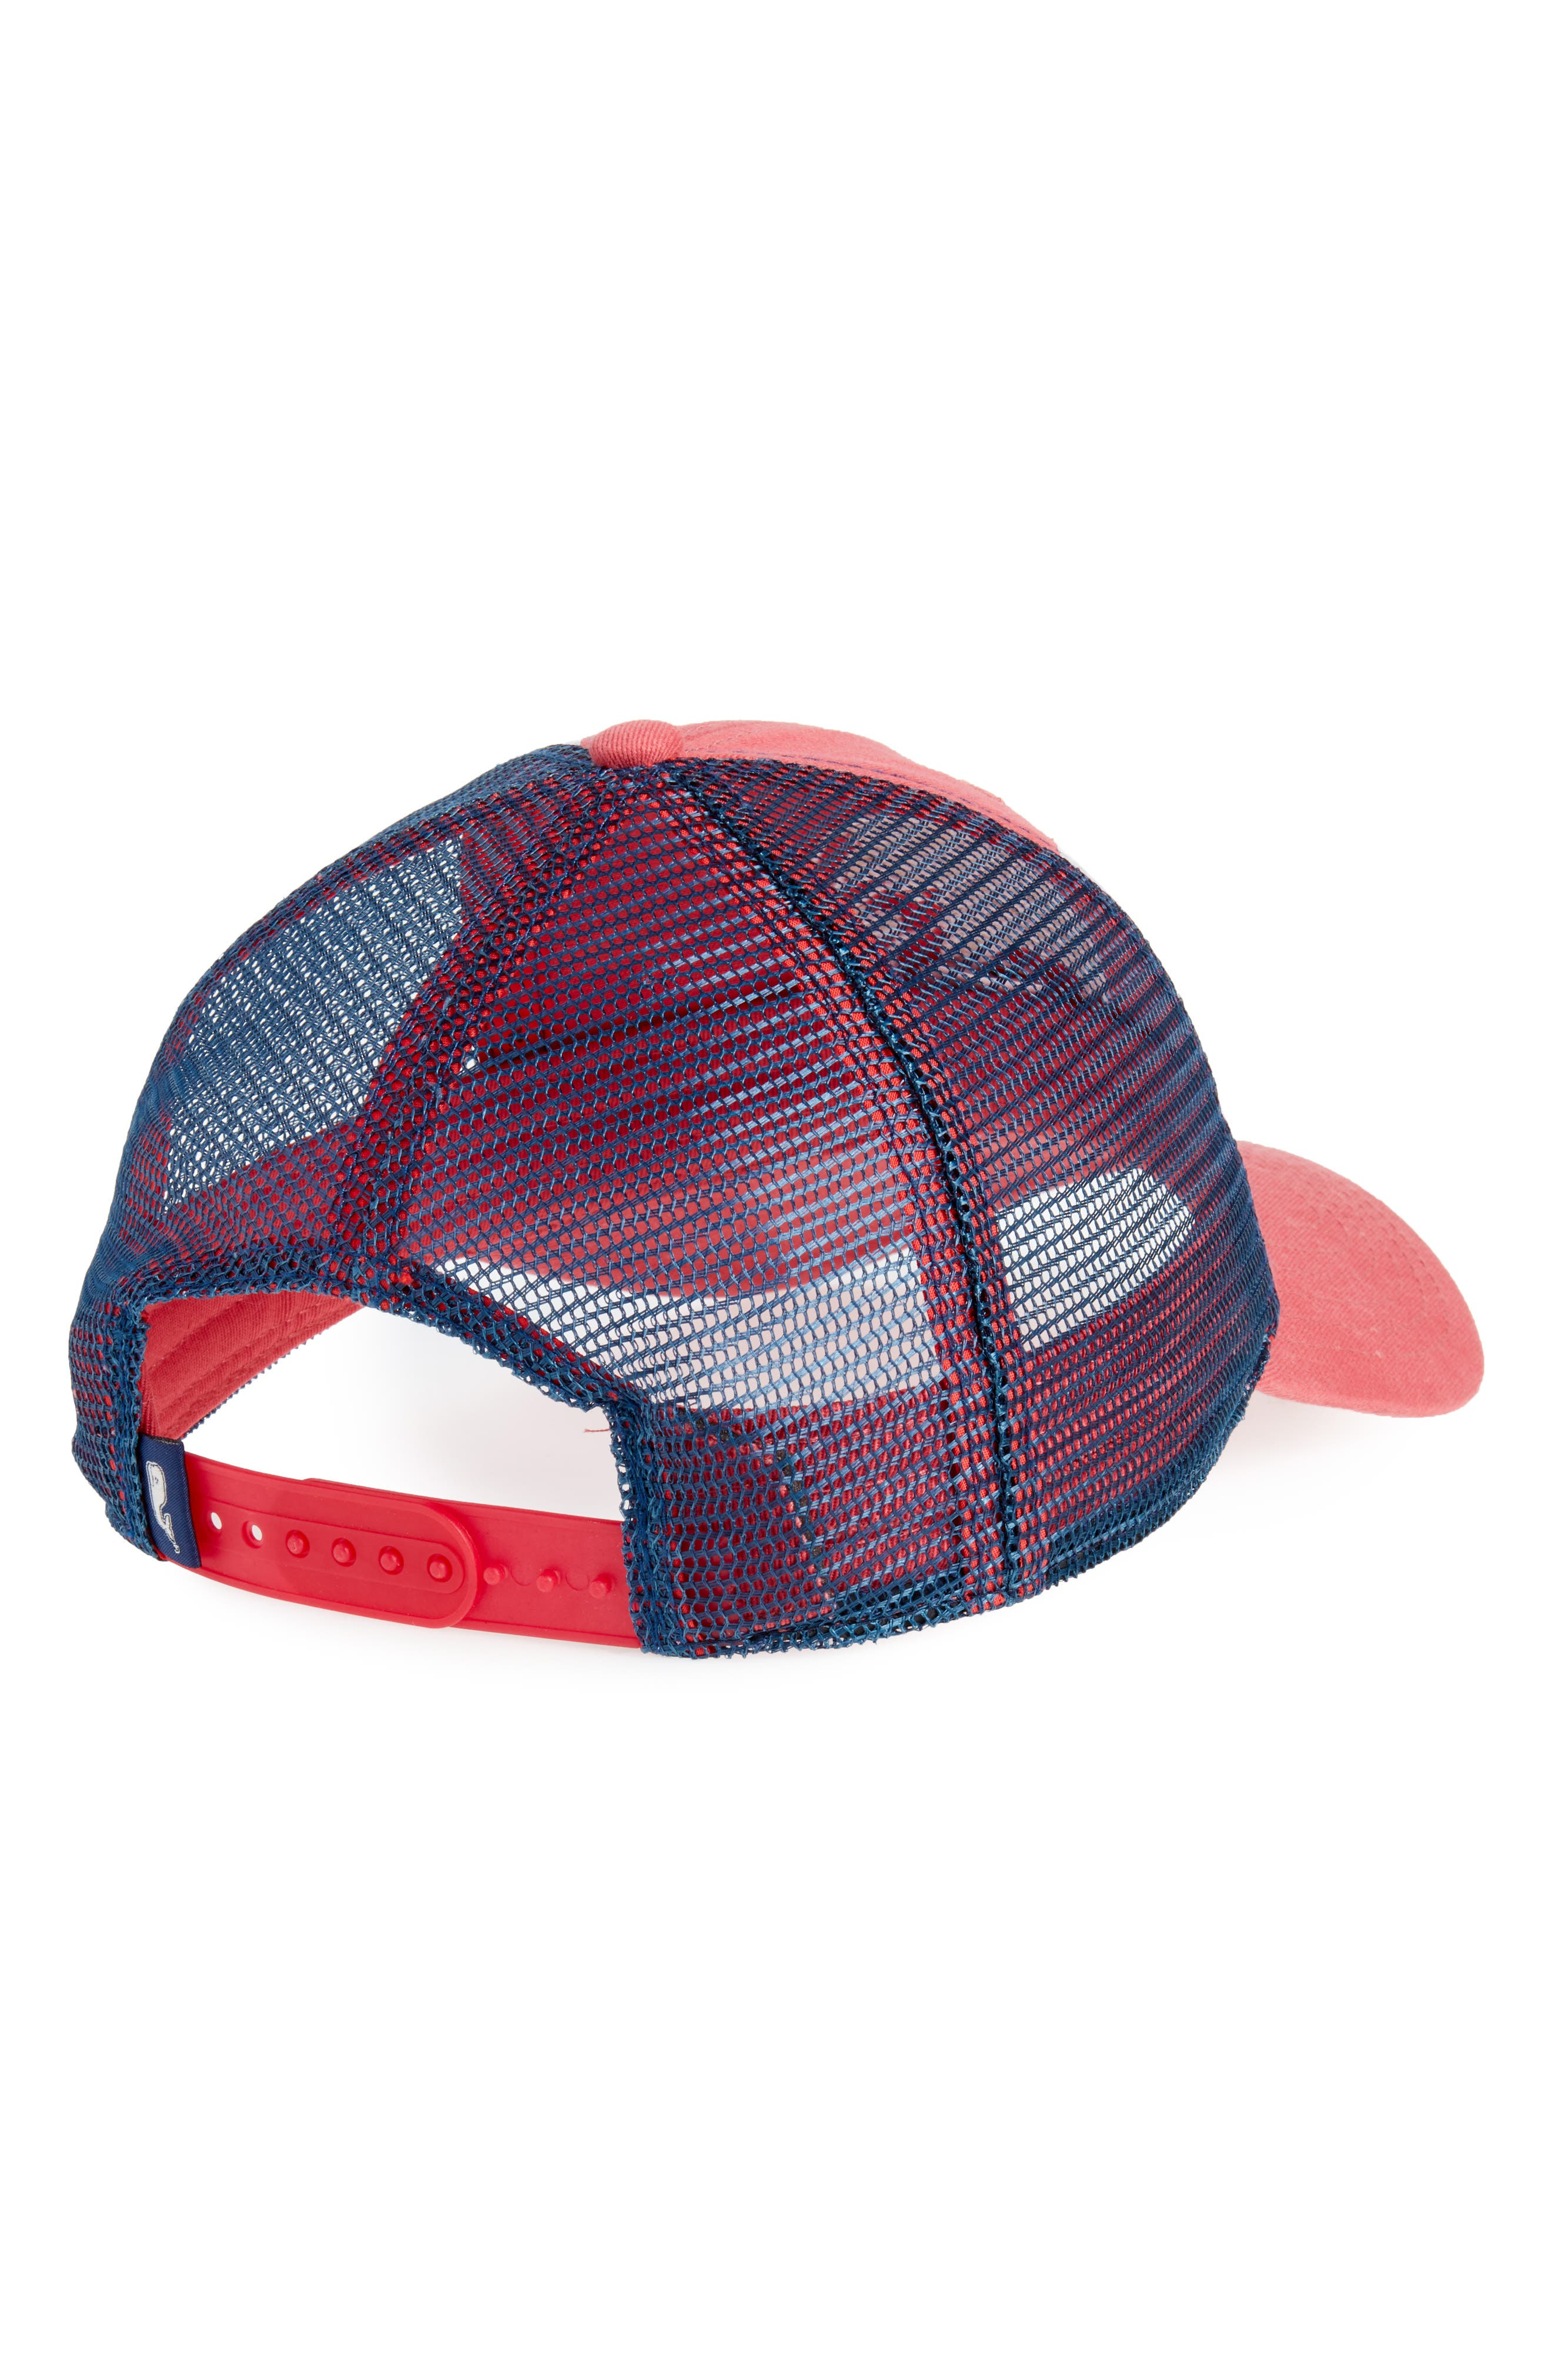 Low Pro Marlin Trucker Cap,                             Alternate thumbnail 2, color,                             628